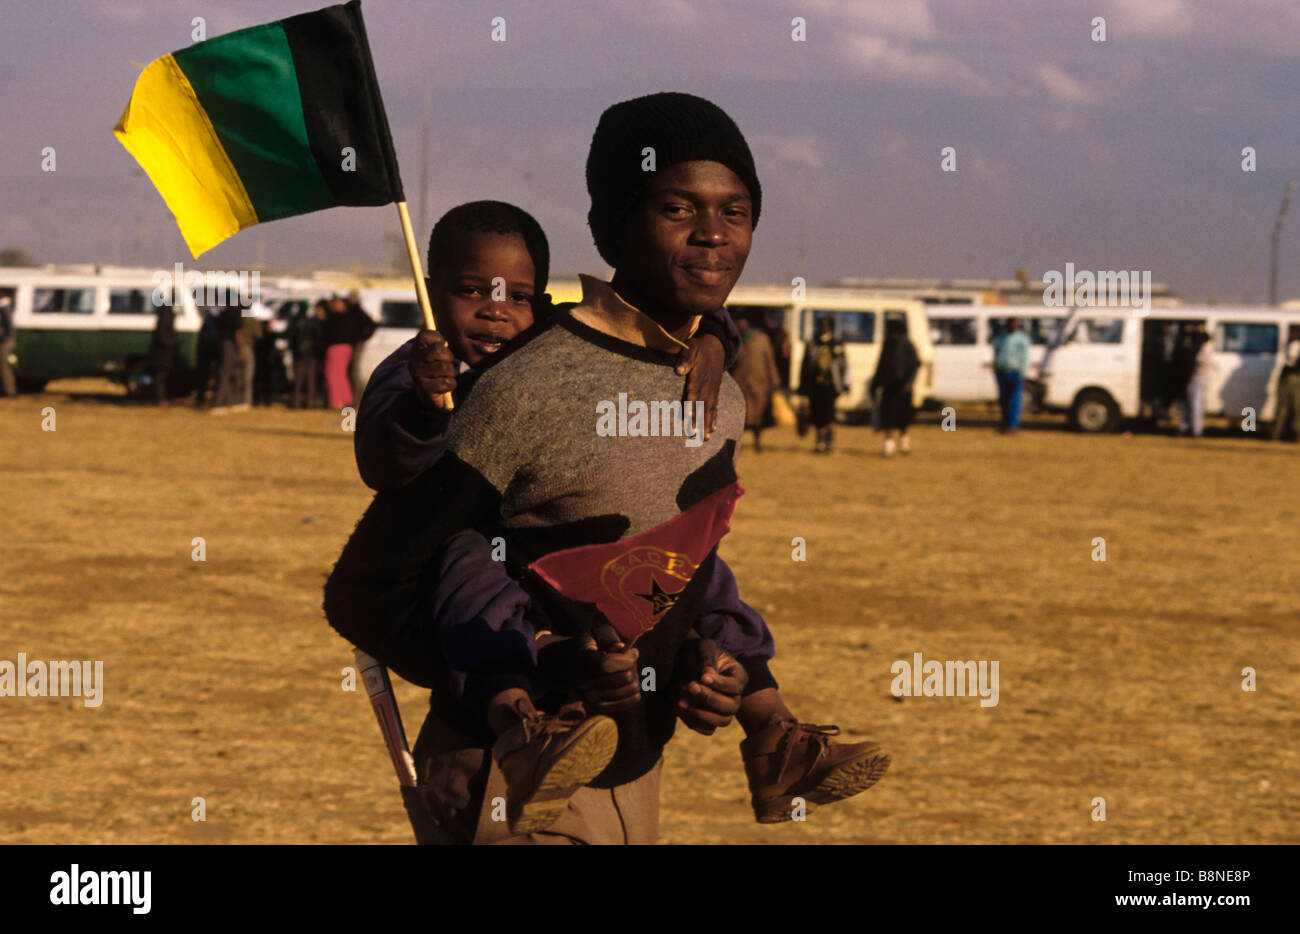 A man carries a child on his back waving the ANC flag at the Soweto launch of S.A.C.P (South African Communist Party) - Stock Image